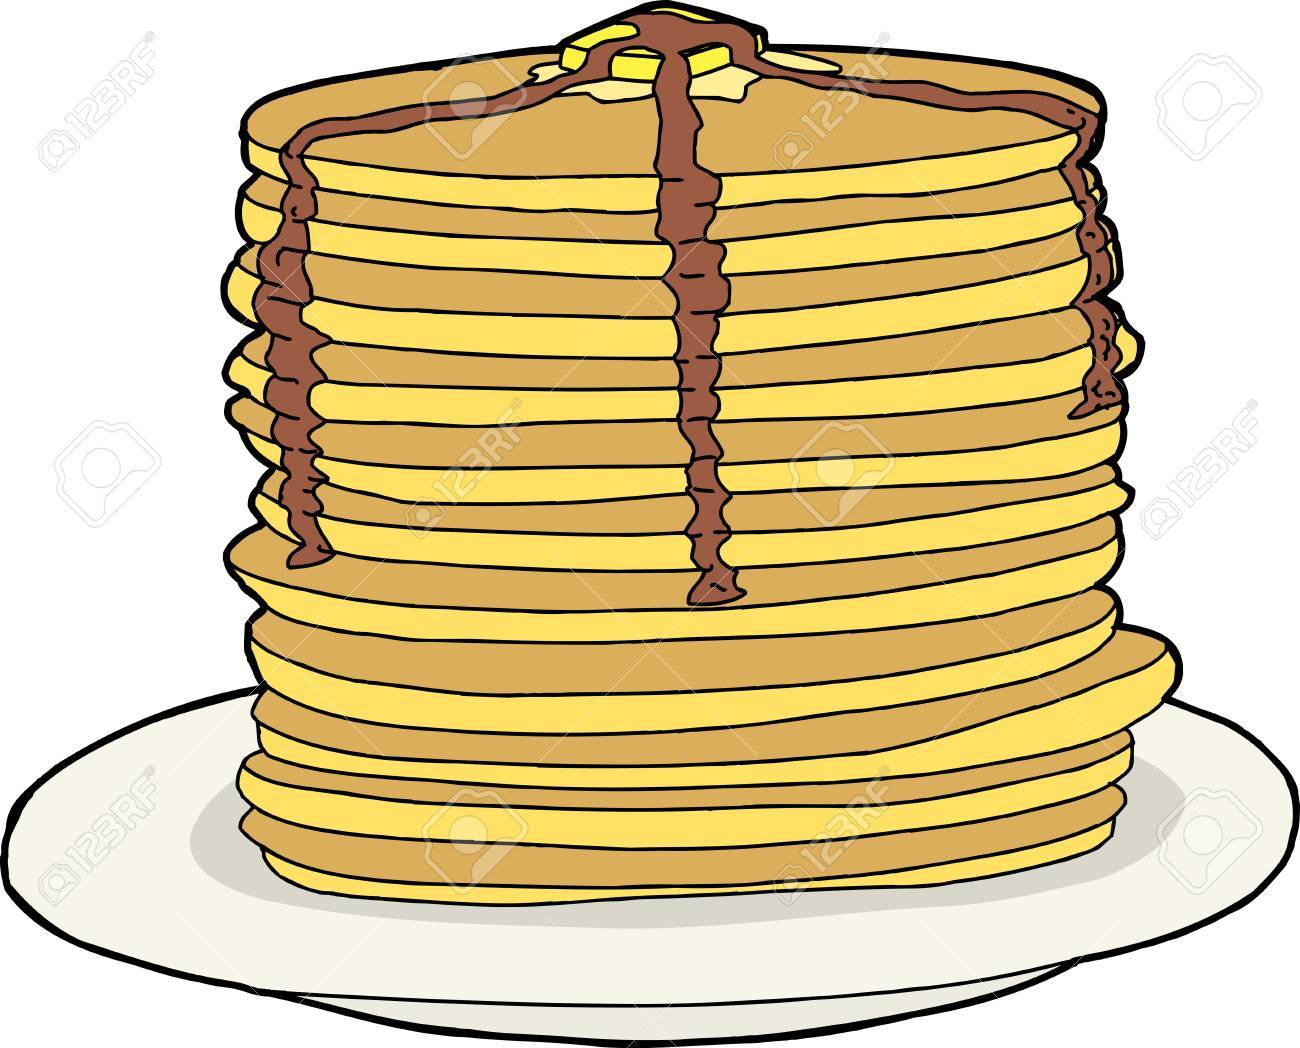 1300x1048 Tall Stack Of Flapjacks With Melted Butter And Syrup Royalty Free